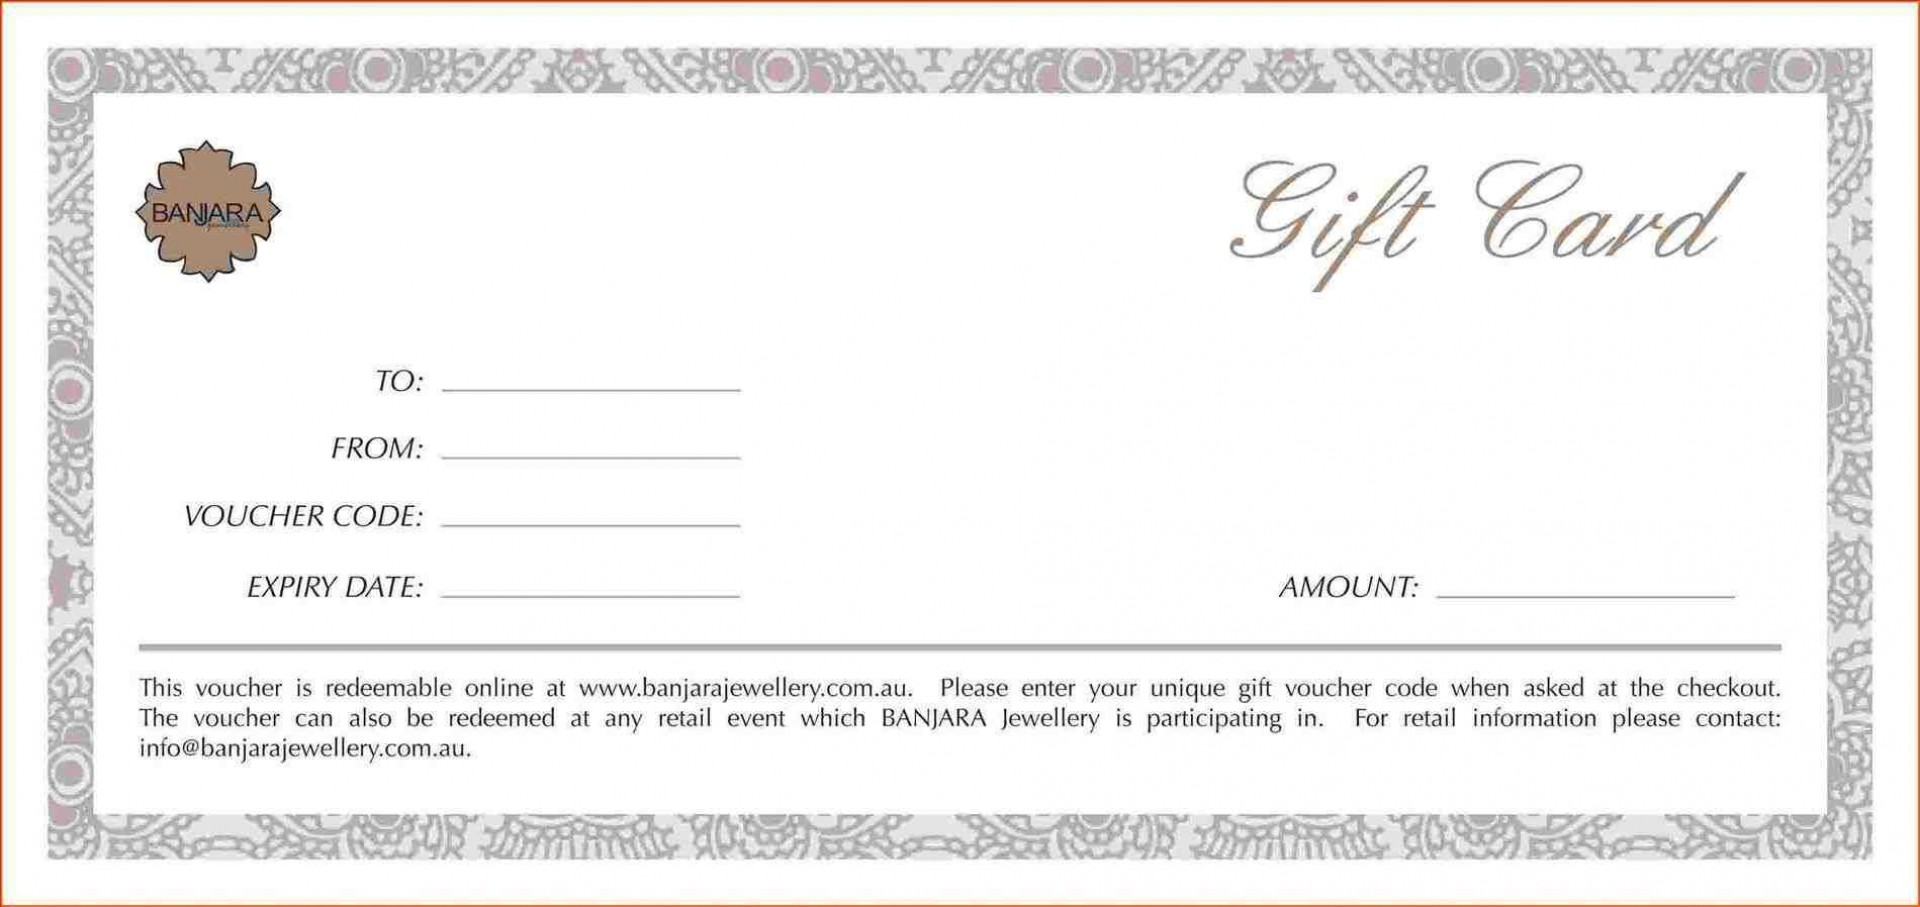 002 Fascinating Gift Certificate Template Pdf Highest Clarity  Massage Christma Printable1920